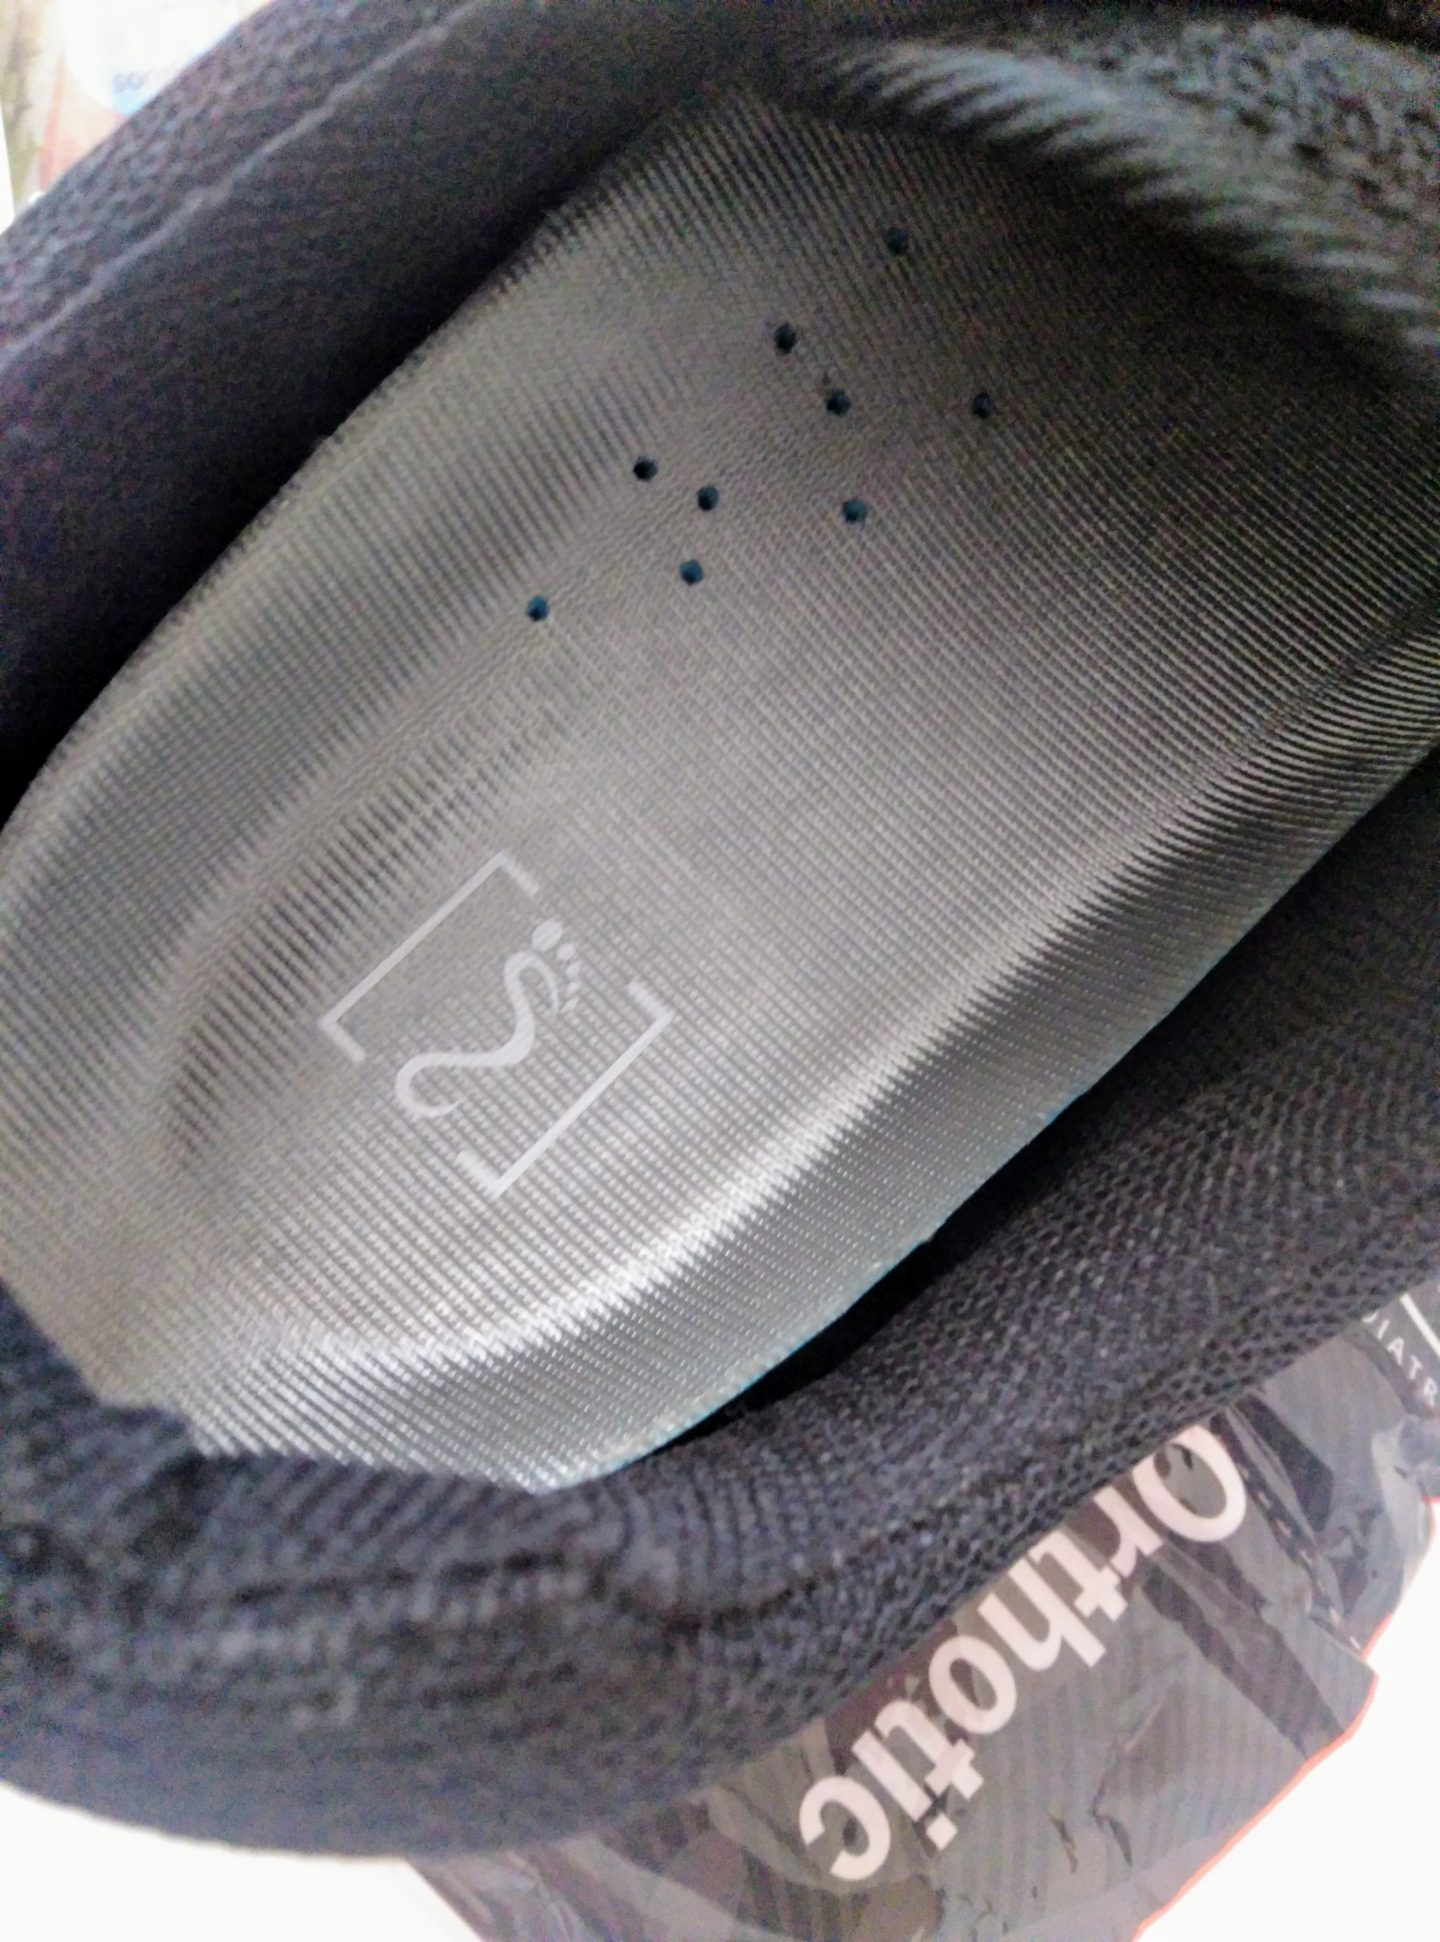 image of shoe and orthotic insole